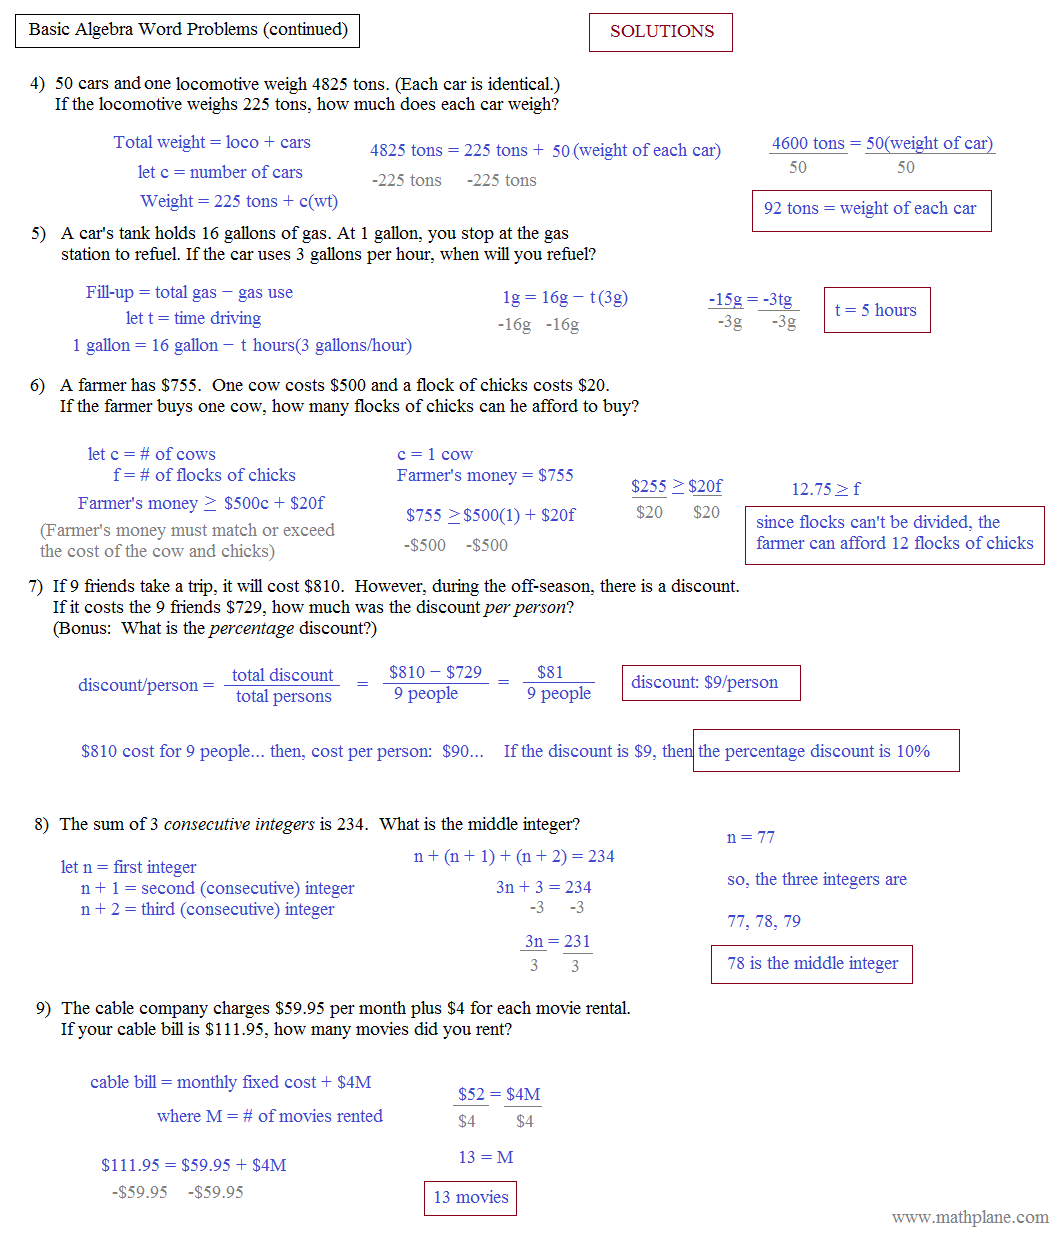 Free Worksheet Equation Word Problems Worksheet math plane algebra word problems basic 2 solutions